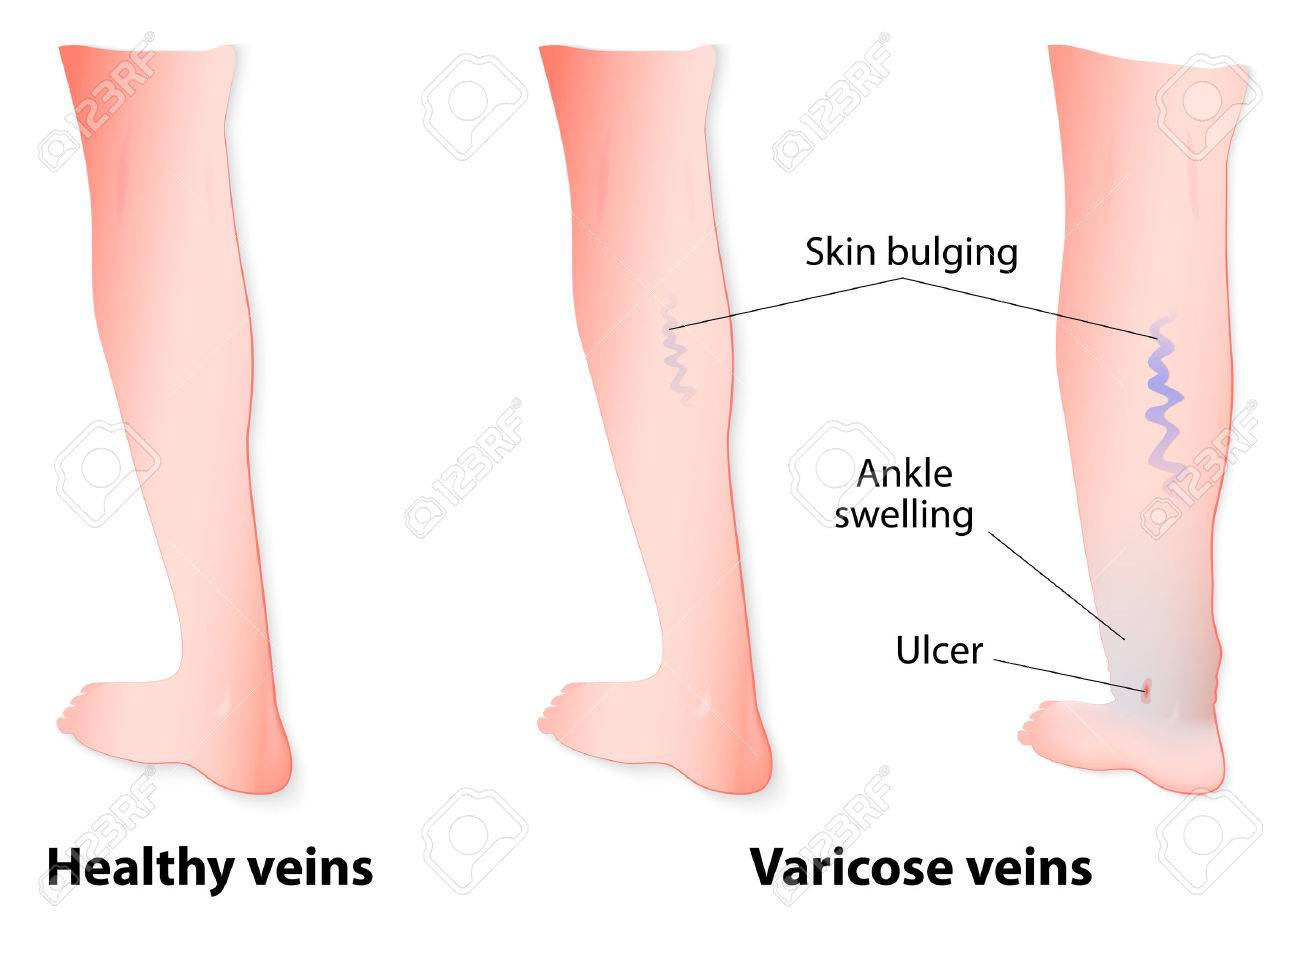 hight resolution of varicose veins are twisted and enlarged veins blue in color linked to faulty valves in